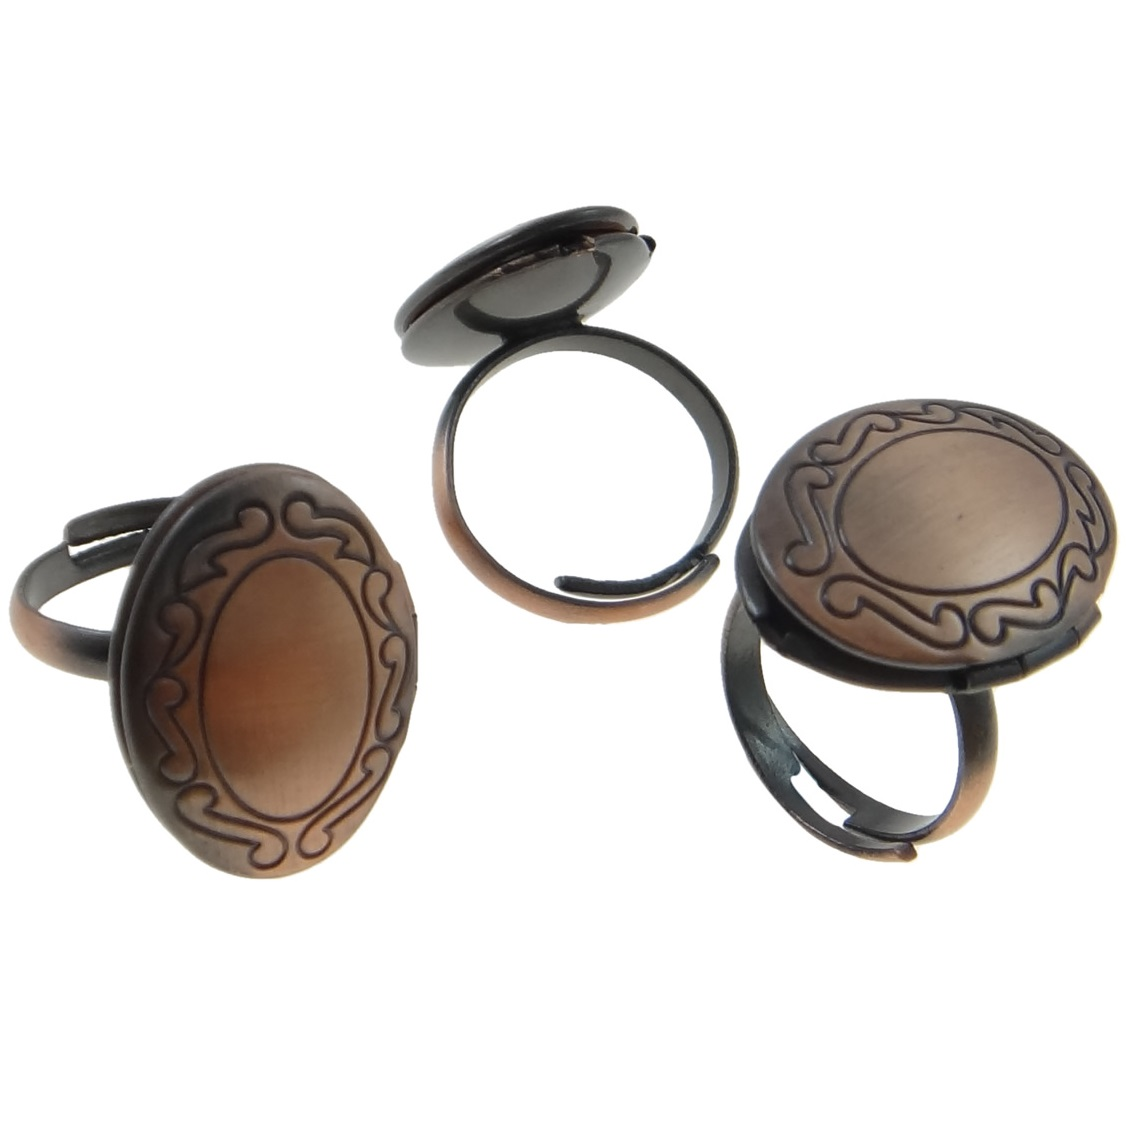 Copper Tone Inscribed Swirl Adjustable Locket Ring